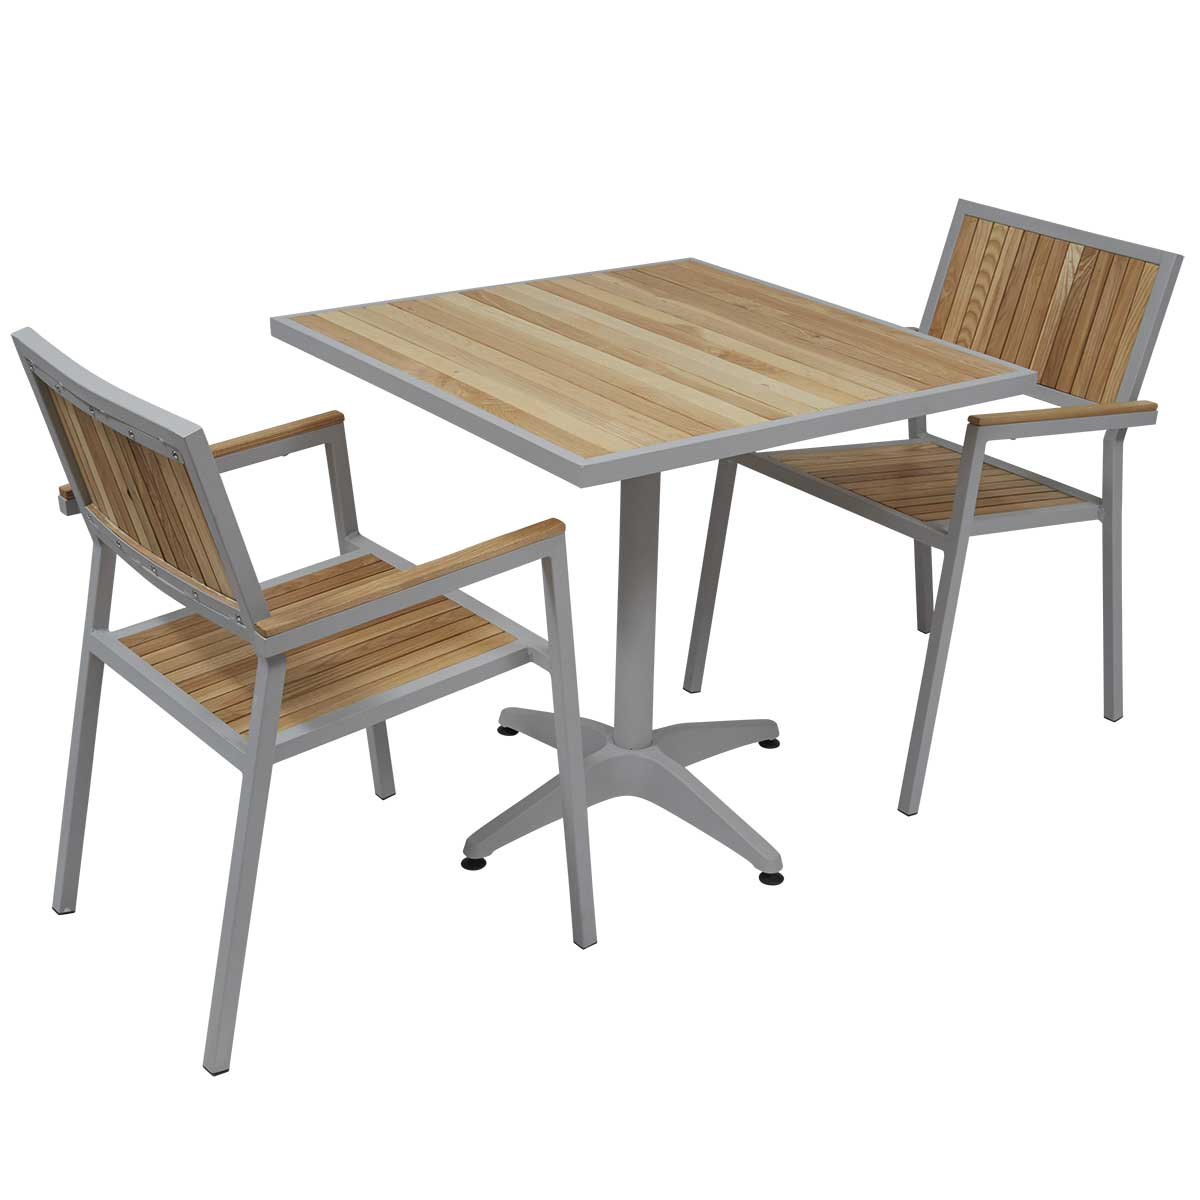 Chaise Bistrot Bois Pas Cher Beau Table Terrasse Pas Cher Of 33 Charmant Chaise Bistrot Bois Pas Cher